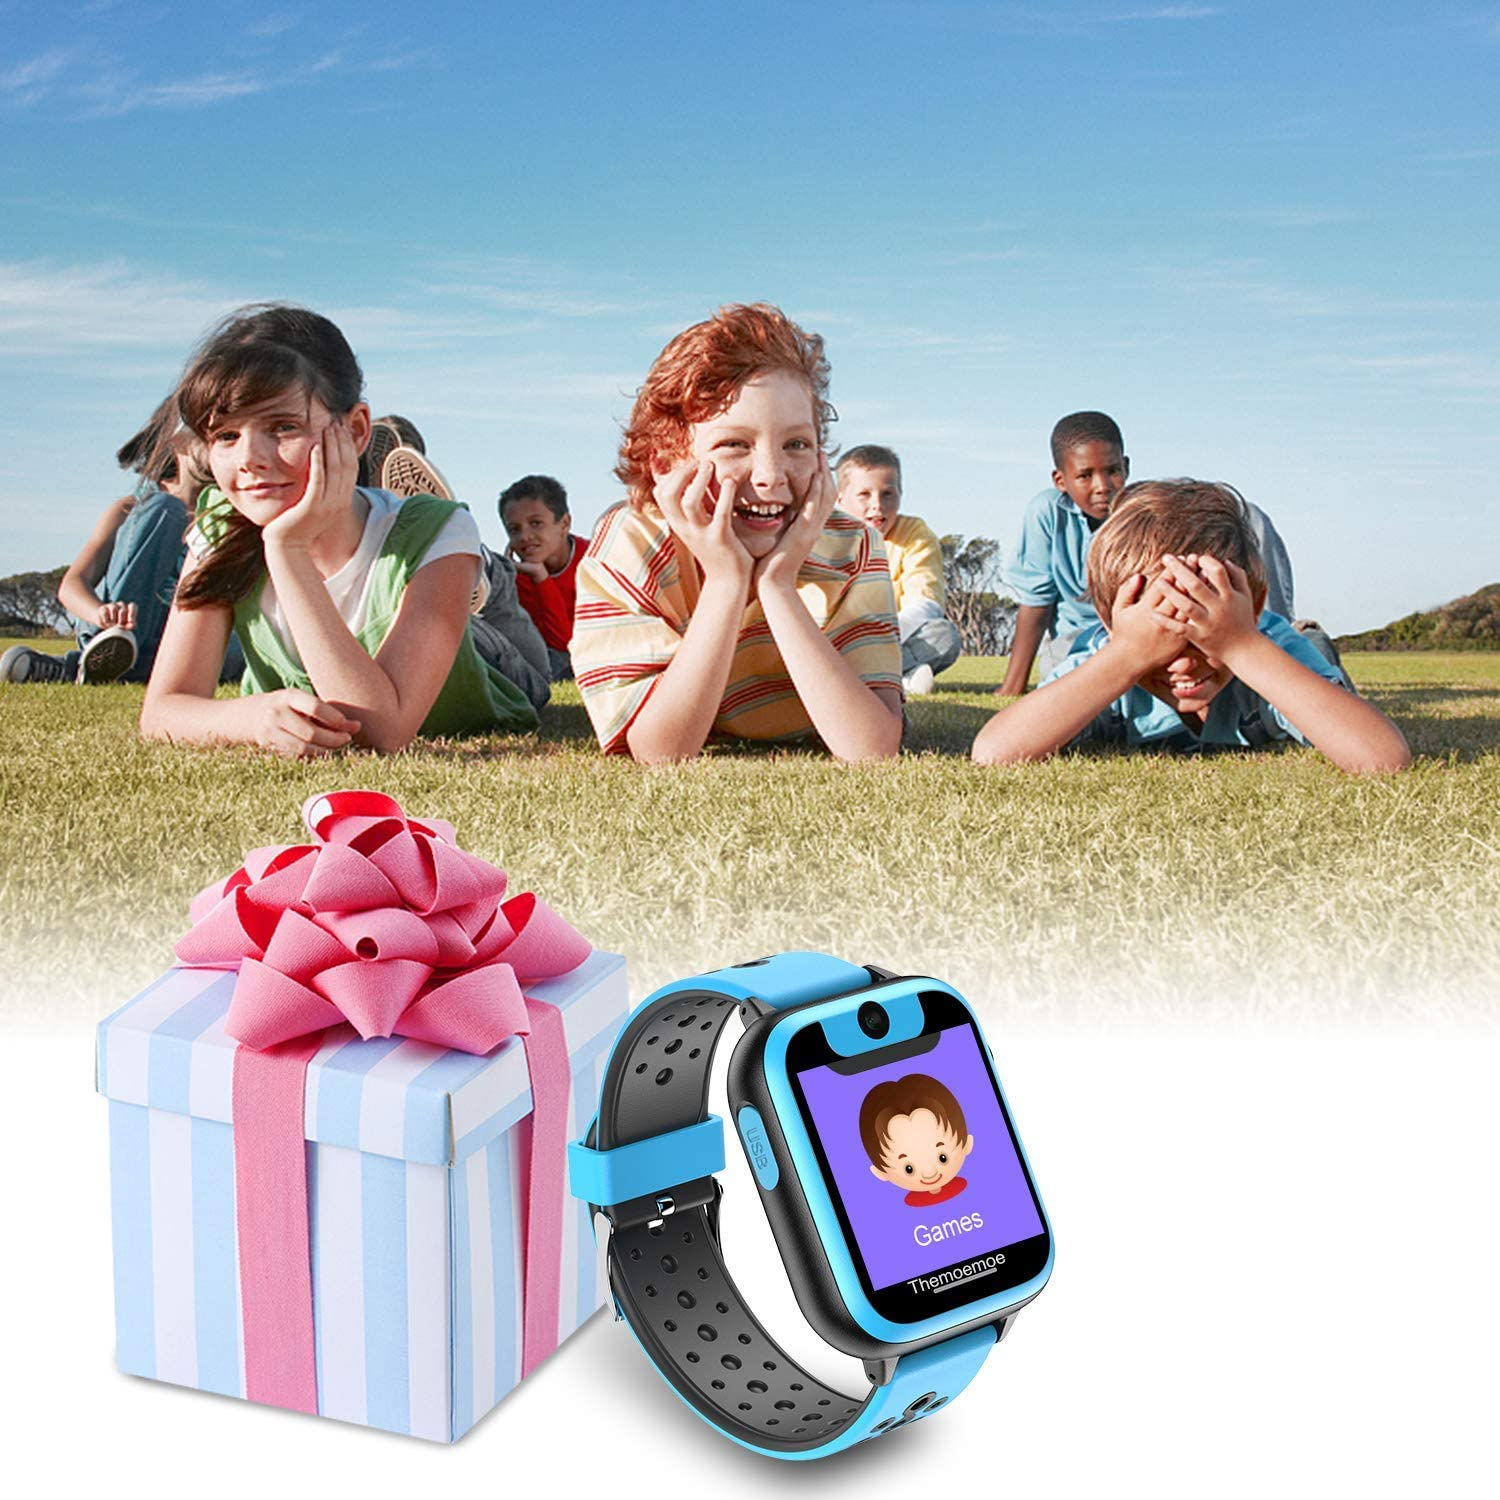 RCTOYS Game Watch for Kids, Smart Watch for Kids, Kids Smartwatch, Smart Watch with Camera, for Girls Boy, 1.44 inch Touch Screen Games Smartswatch with Calls Digital Camera